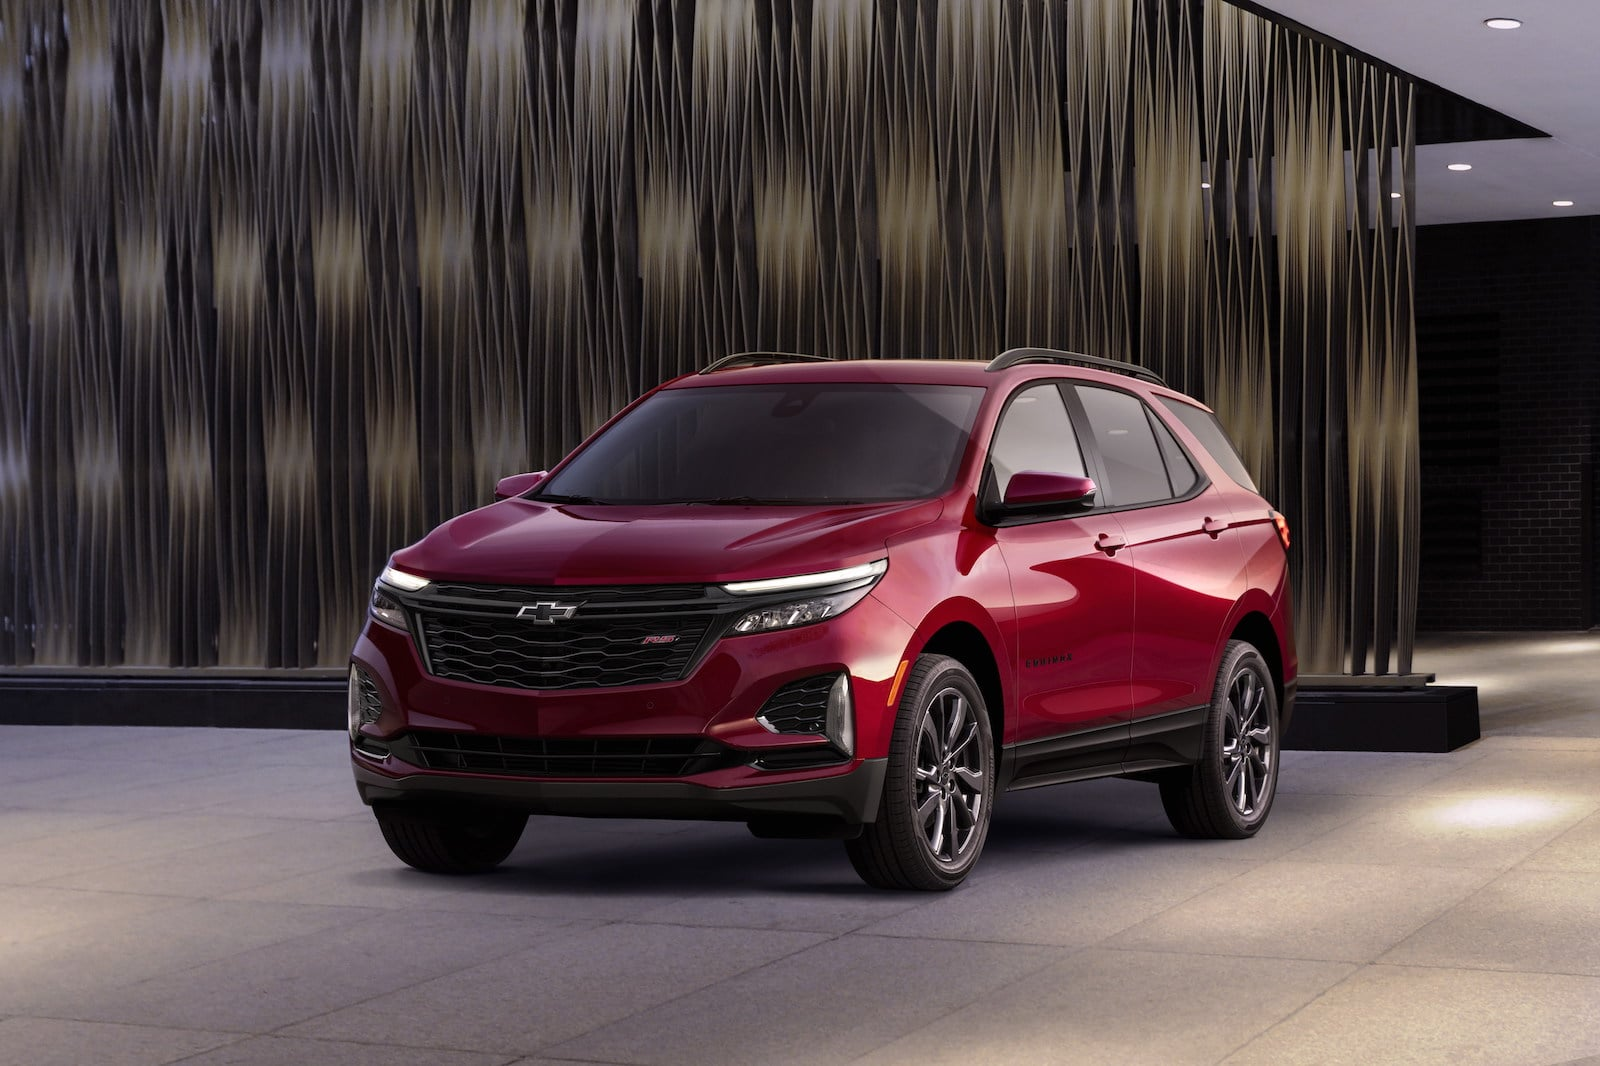 Chevy Introduces Refreshed Equinox for 2020 ...